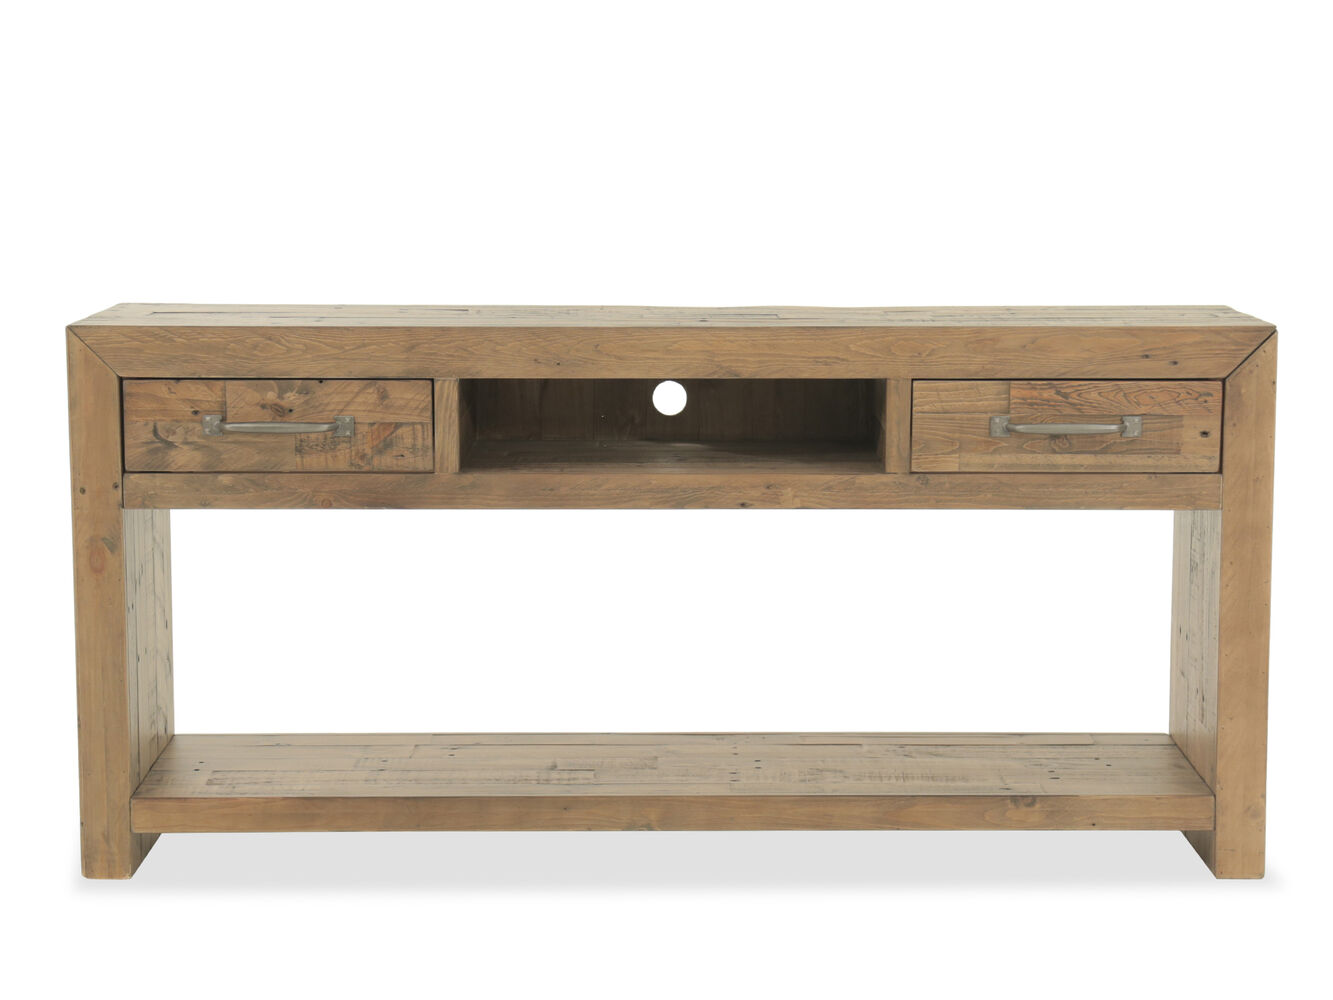 Two Drawer Rustic Farmhouse Console Table In Brown